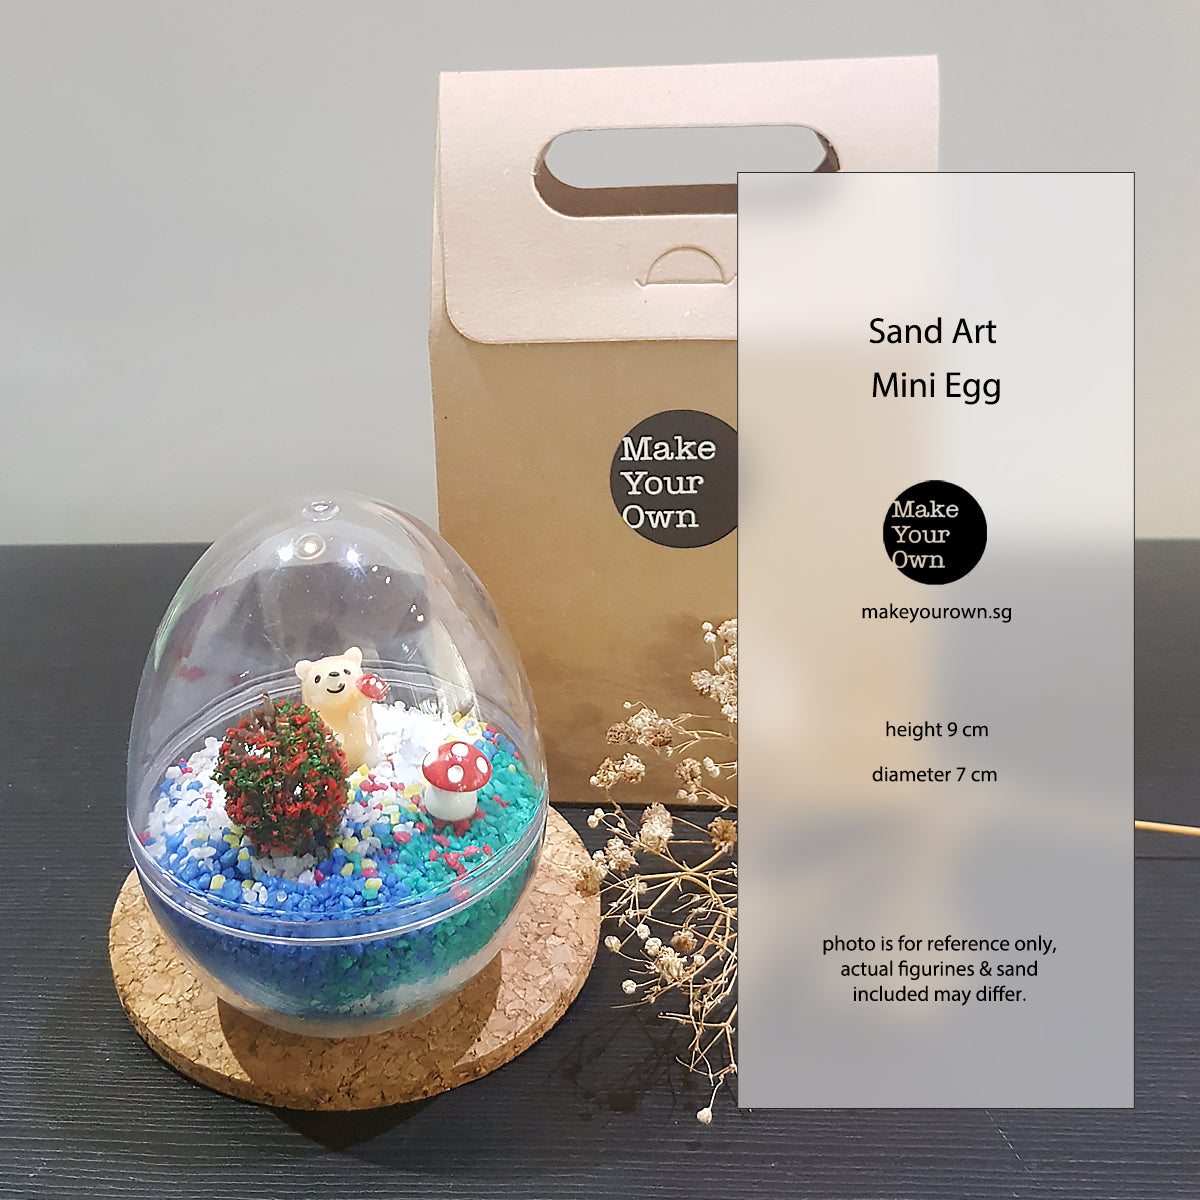 sand art mini egg event diy kit virtual workshop singapore